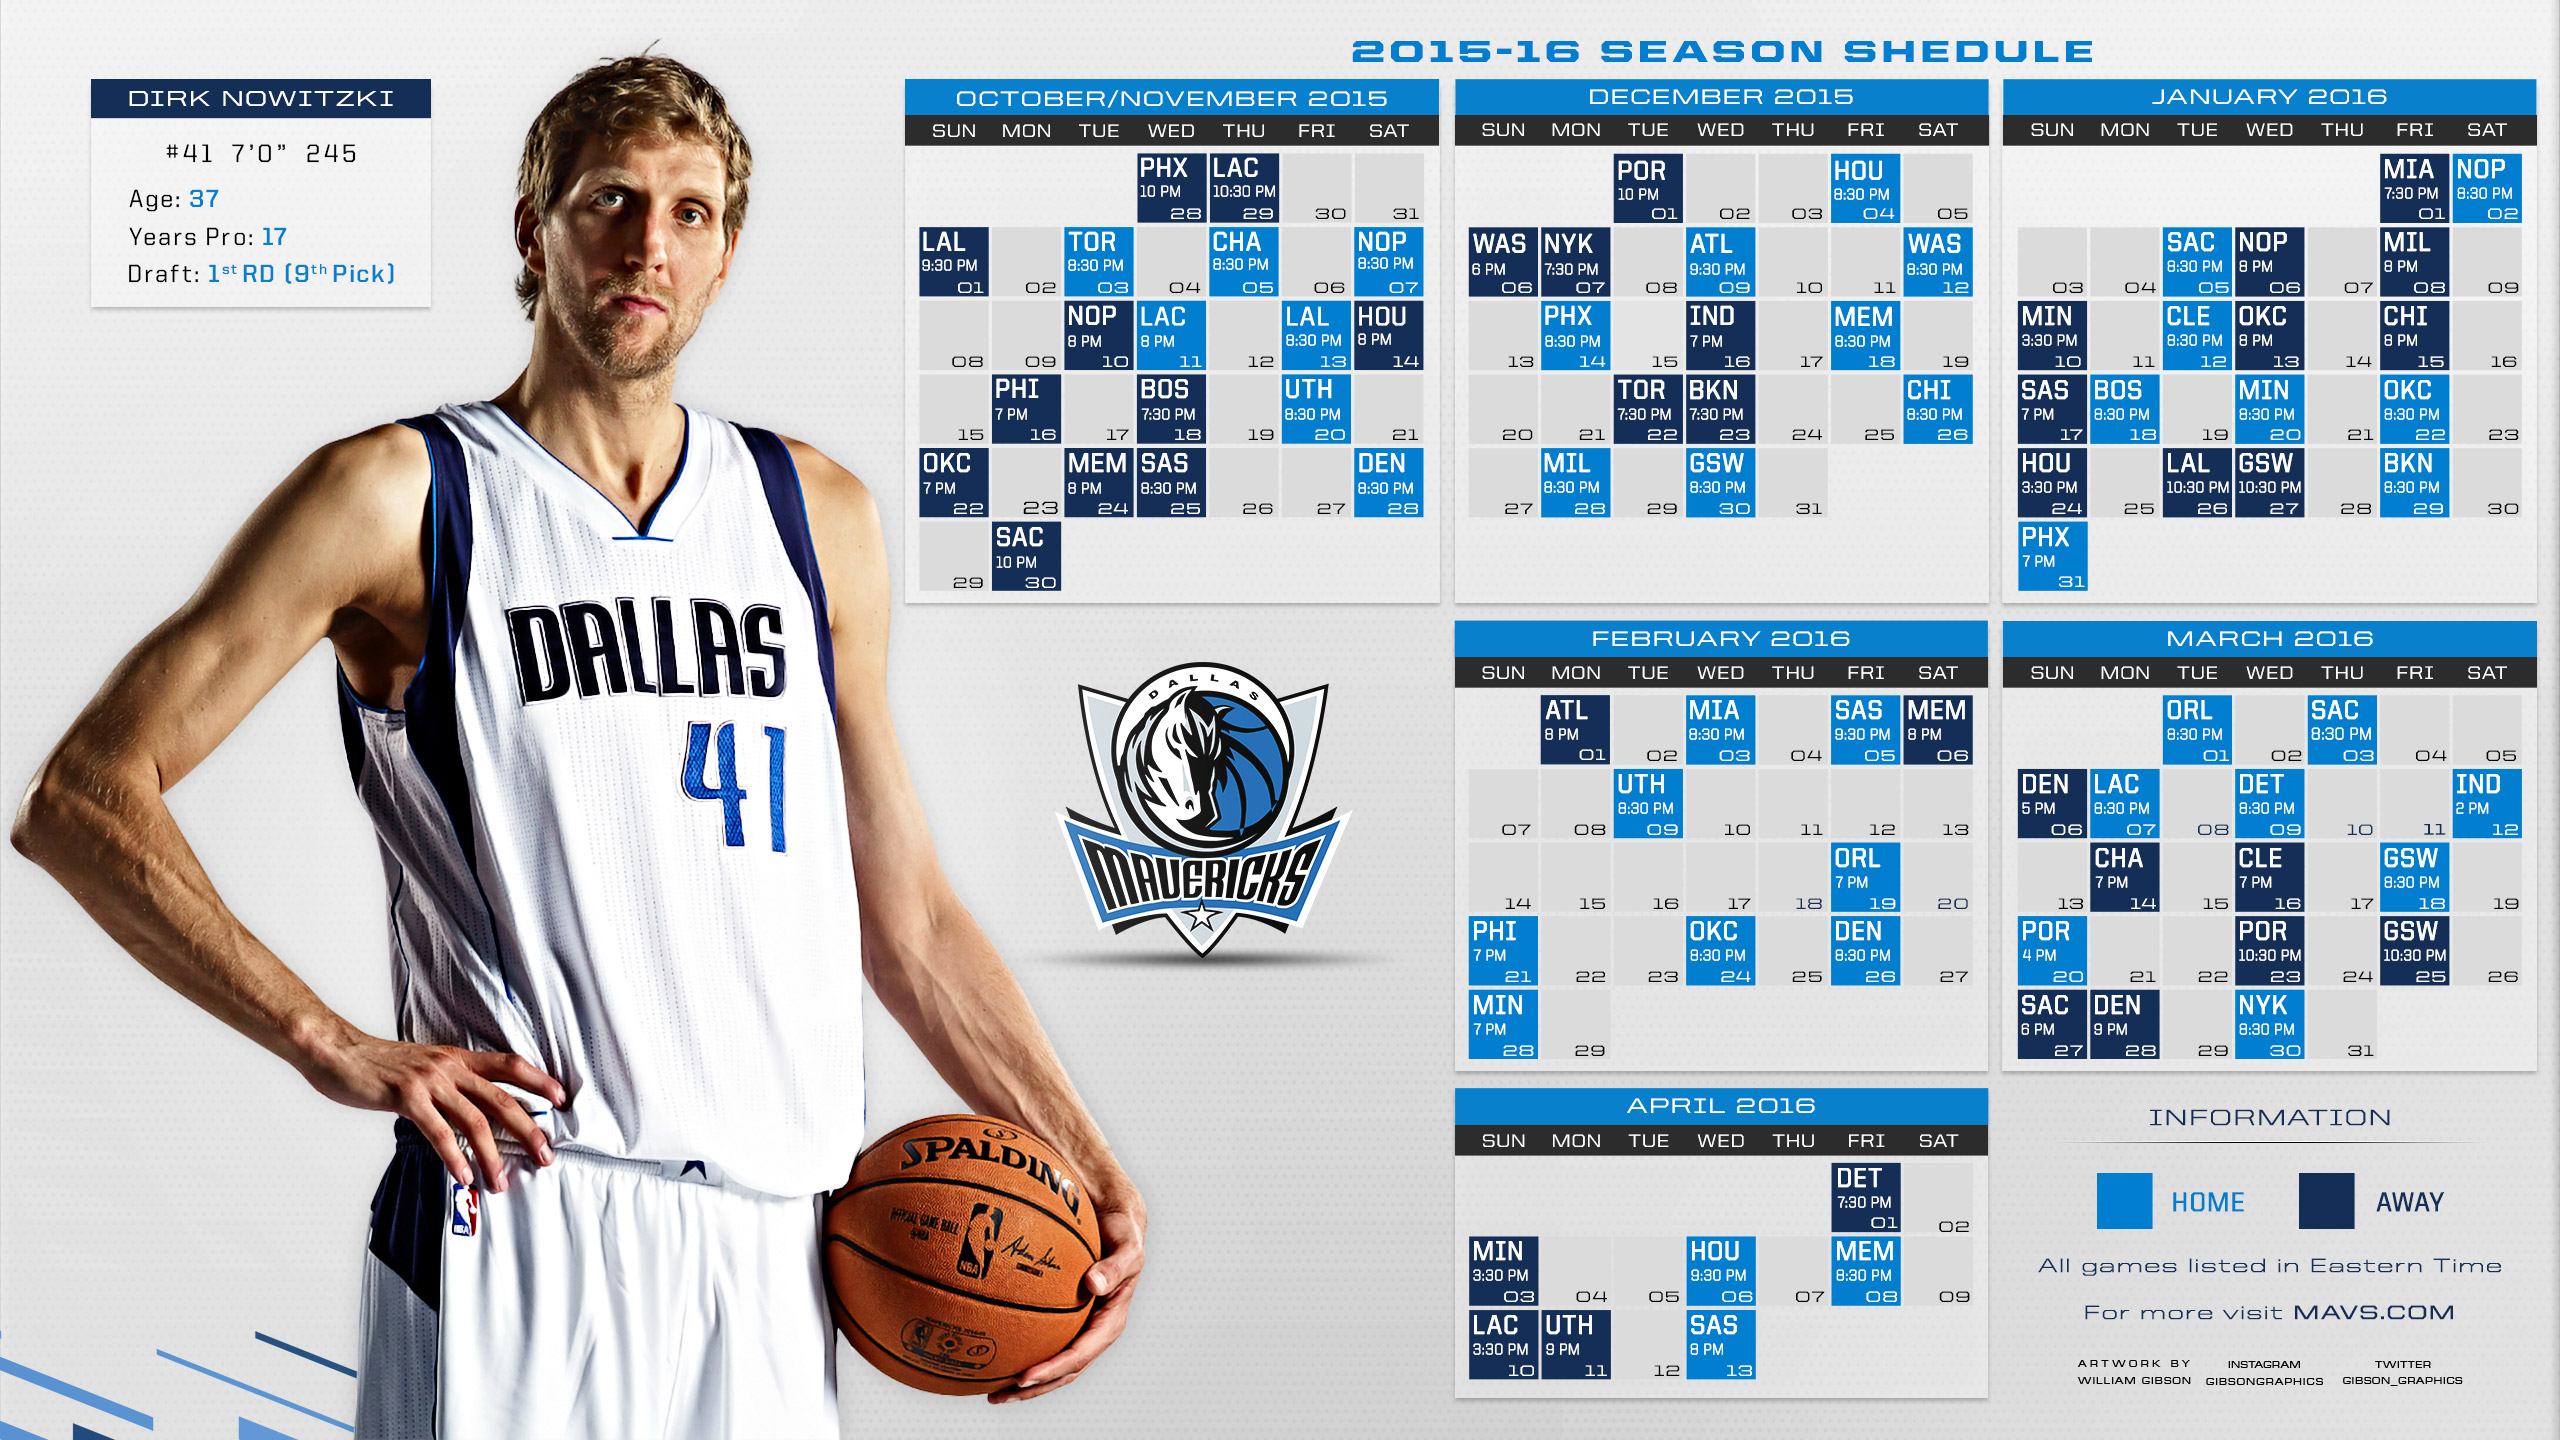 Dallas mavericks 2015 2016 schedule wallpaper basketball for Terengganu home wallpaper 2016